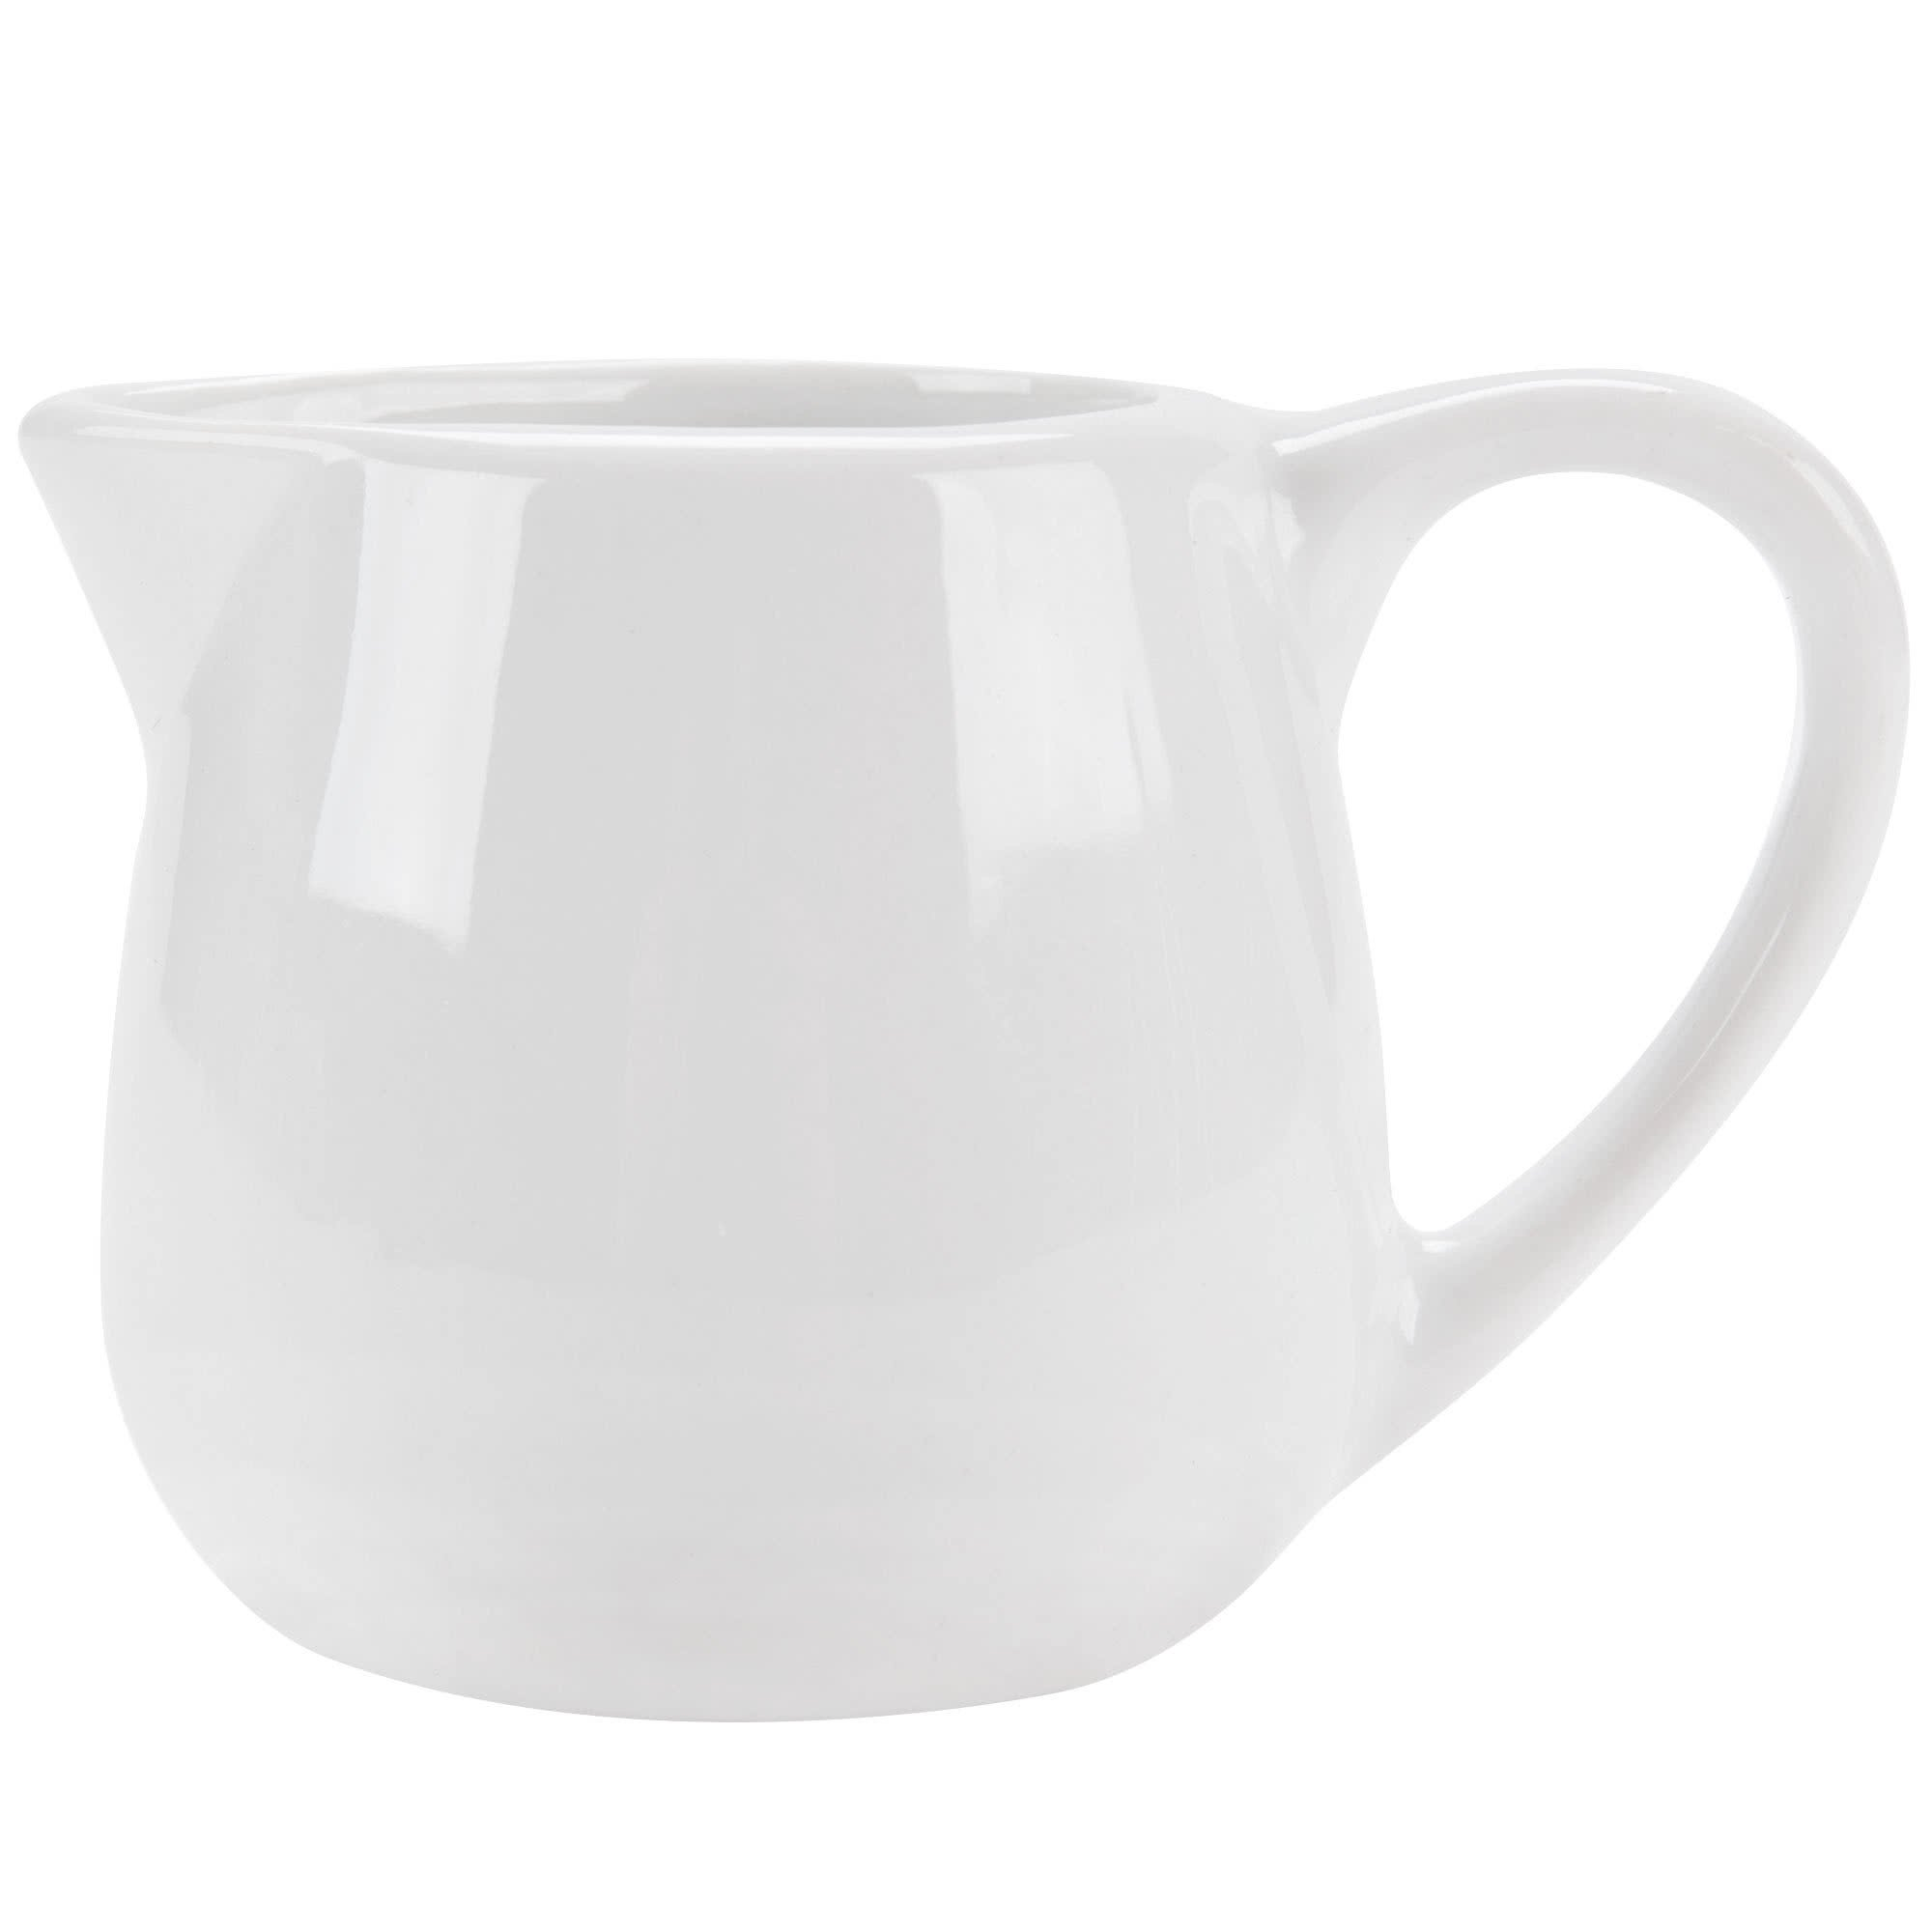 Tabletop King PC-401 Bright White Porcelain 1.5 oz. Creamer with Handle - 48/Case